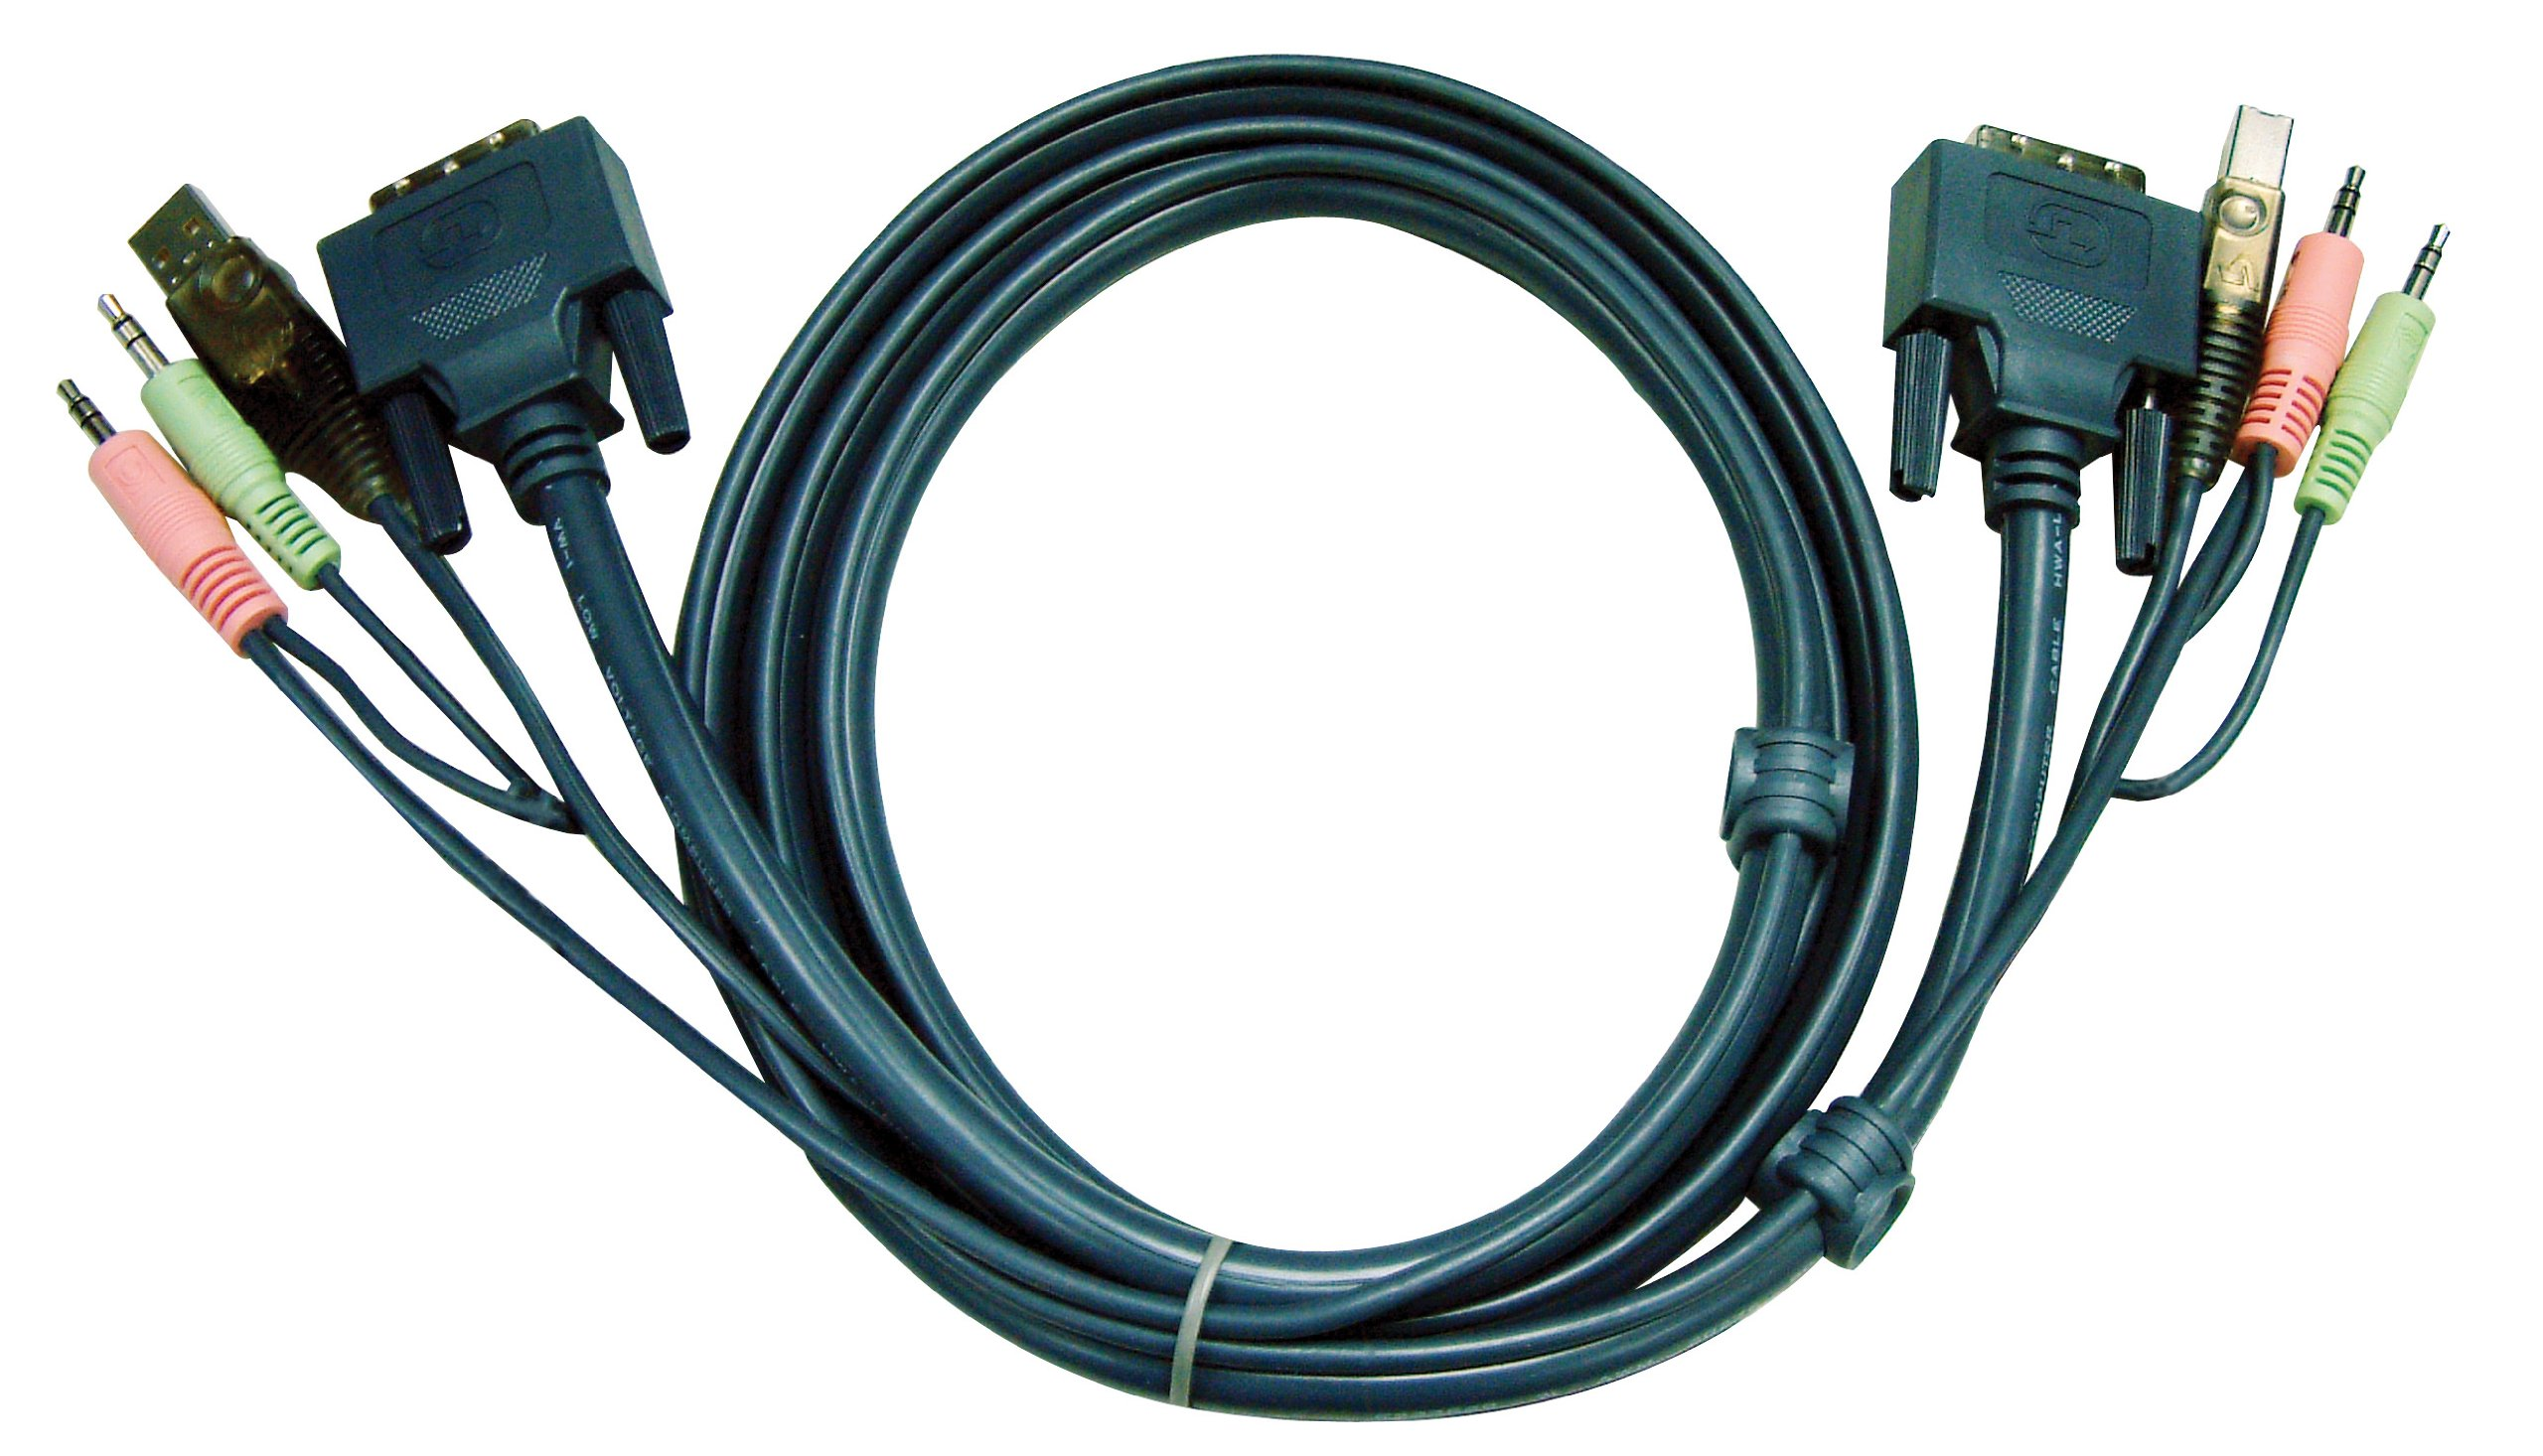 ATEN USB DVI-D Single Link KVM Cable for CS1762A & CS1764A (10 Feet) 2L7D03U by ATEN